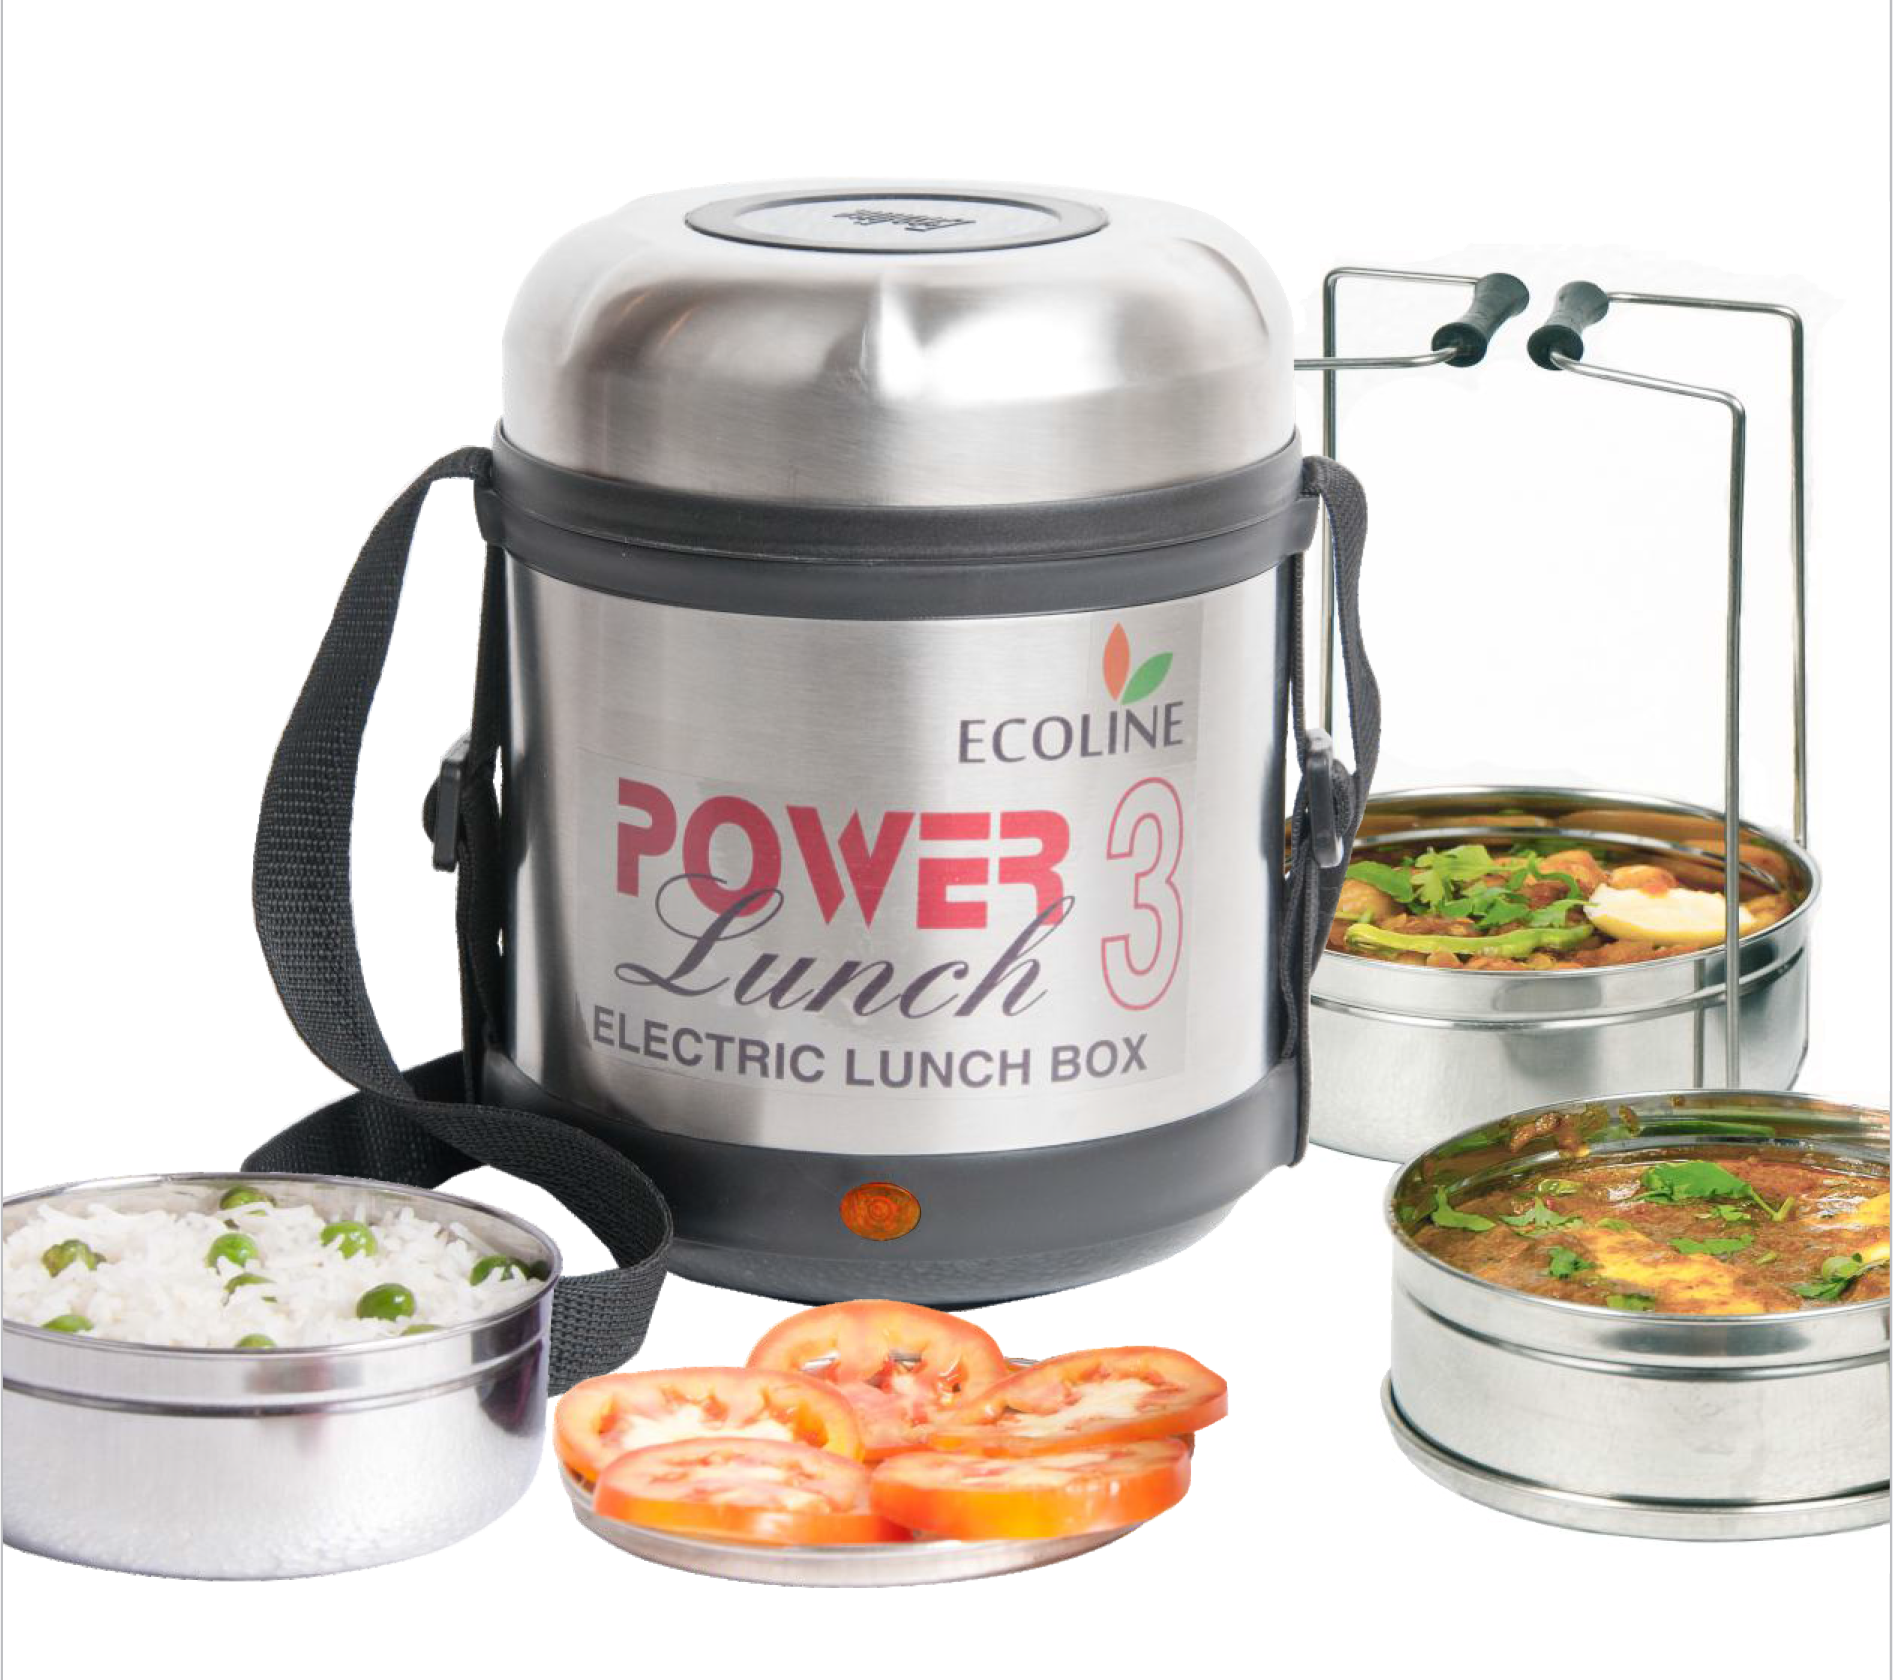 Power Lunch 3 Electric Lunch Box